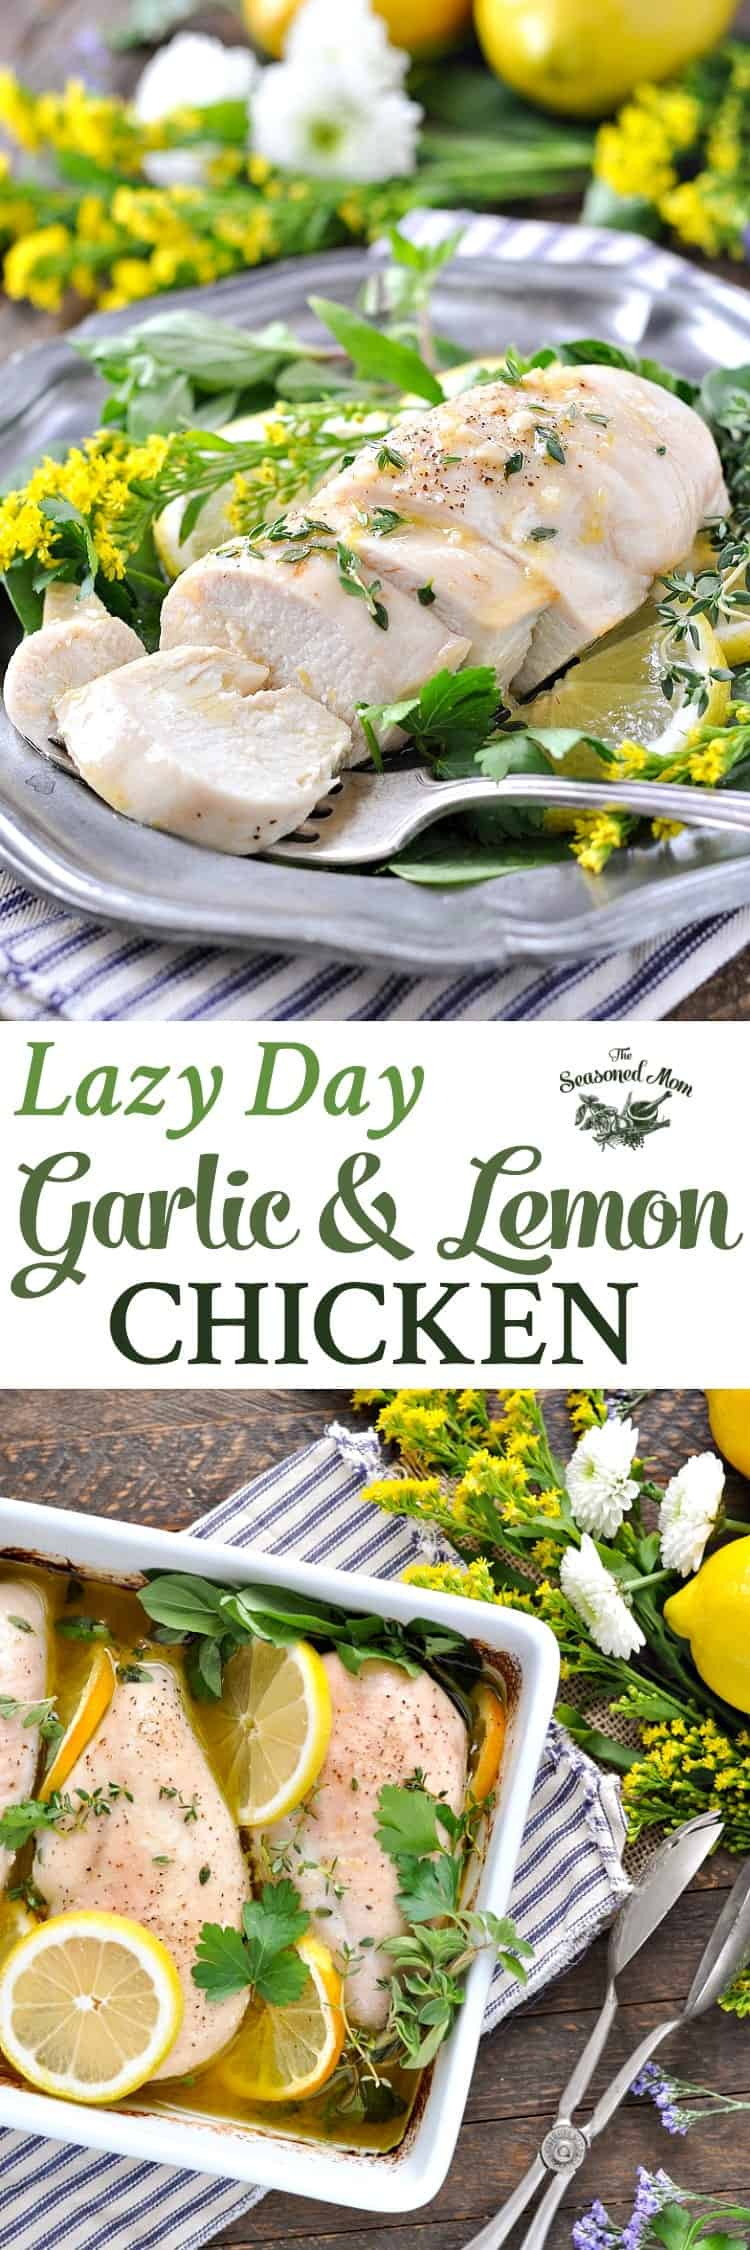 Lazy Day Garlic And Lemon Chicken Easy Dinner Recipes